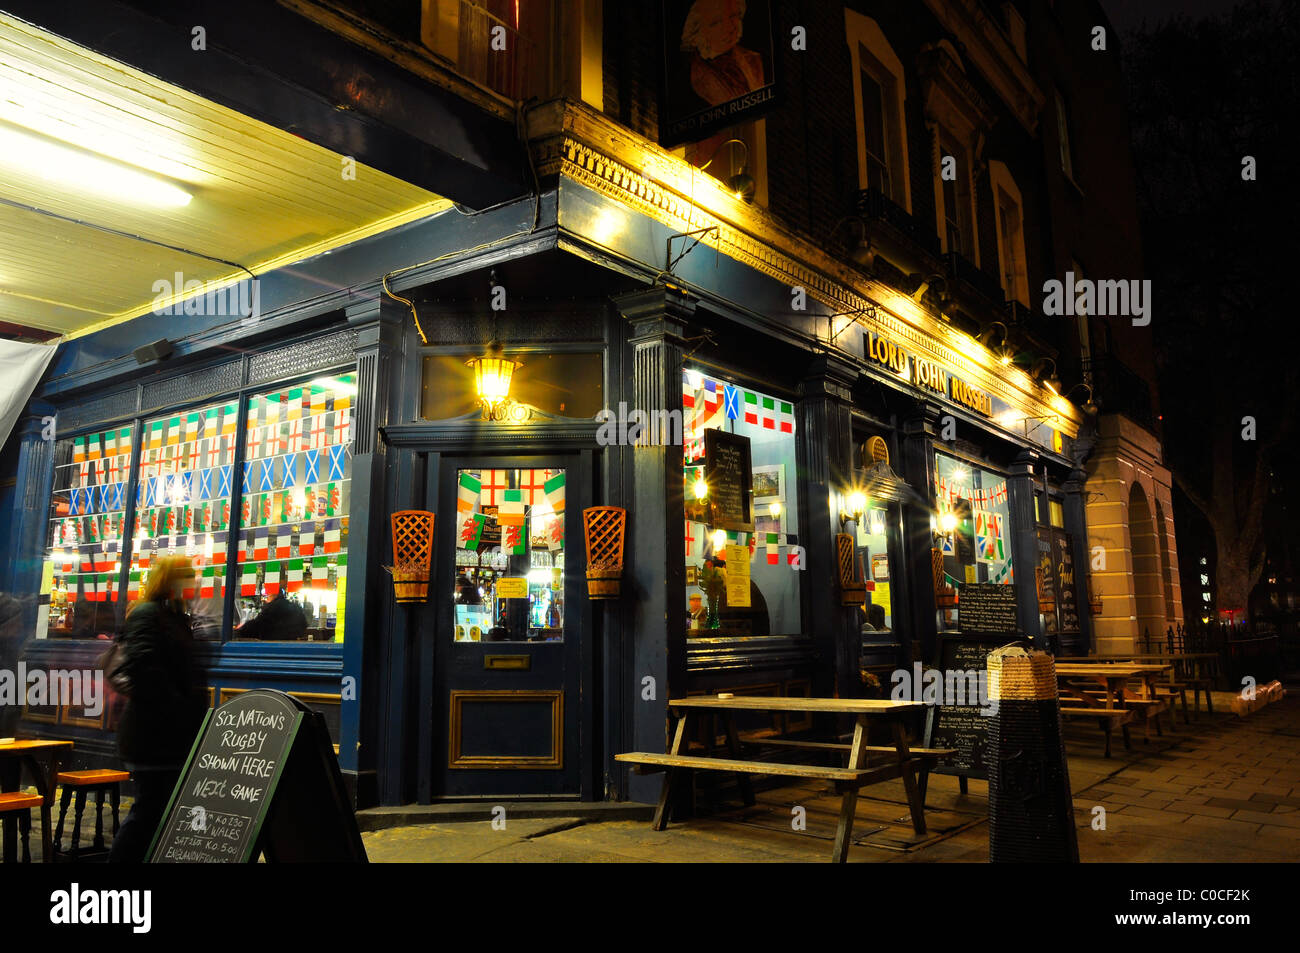 Lord John Russell Pub in London - Stock Image